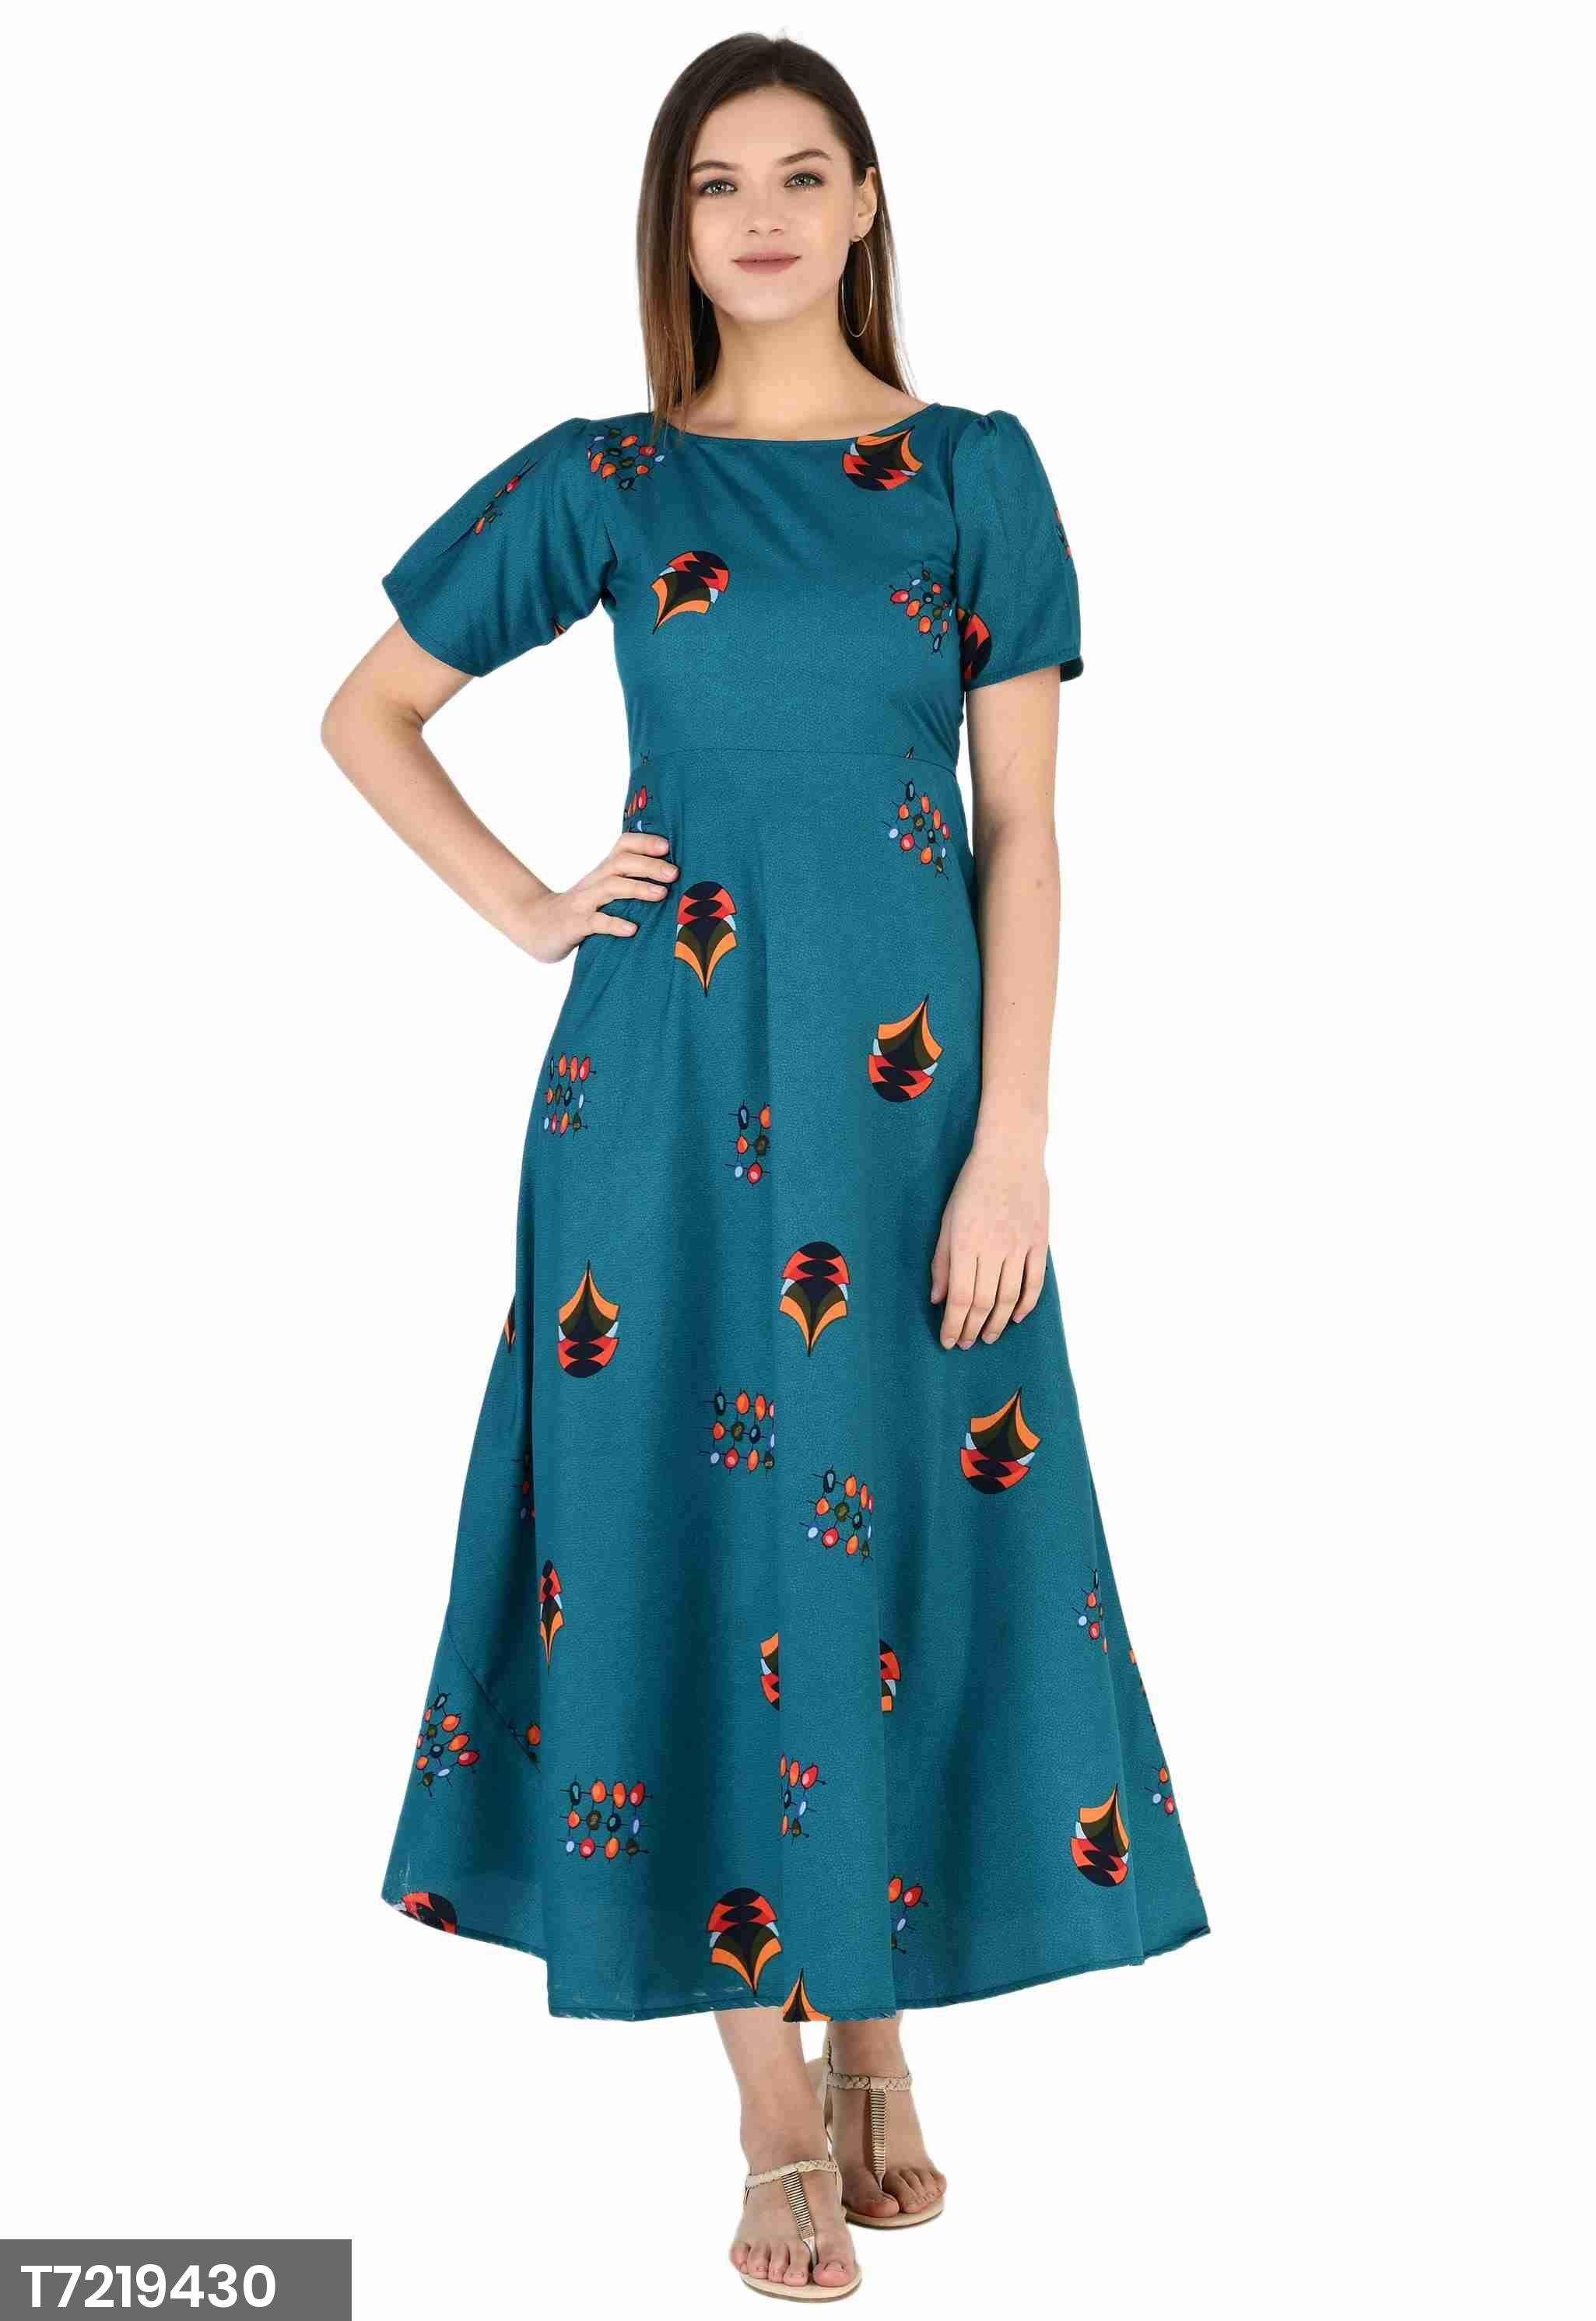 Stitched Dress Beautified With Cape Sleeve And Print As Shown